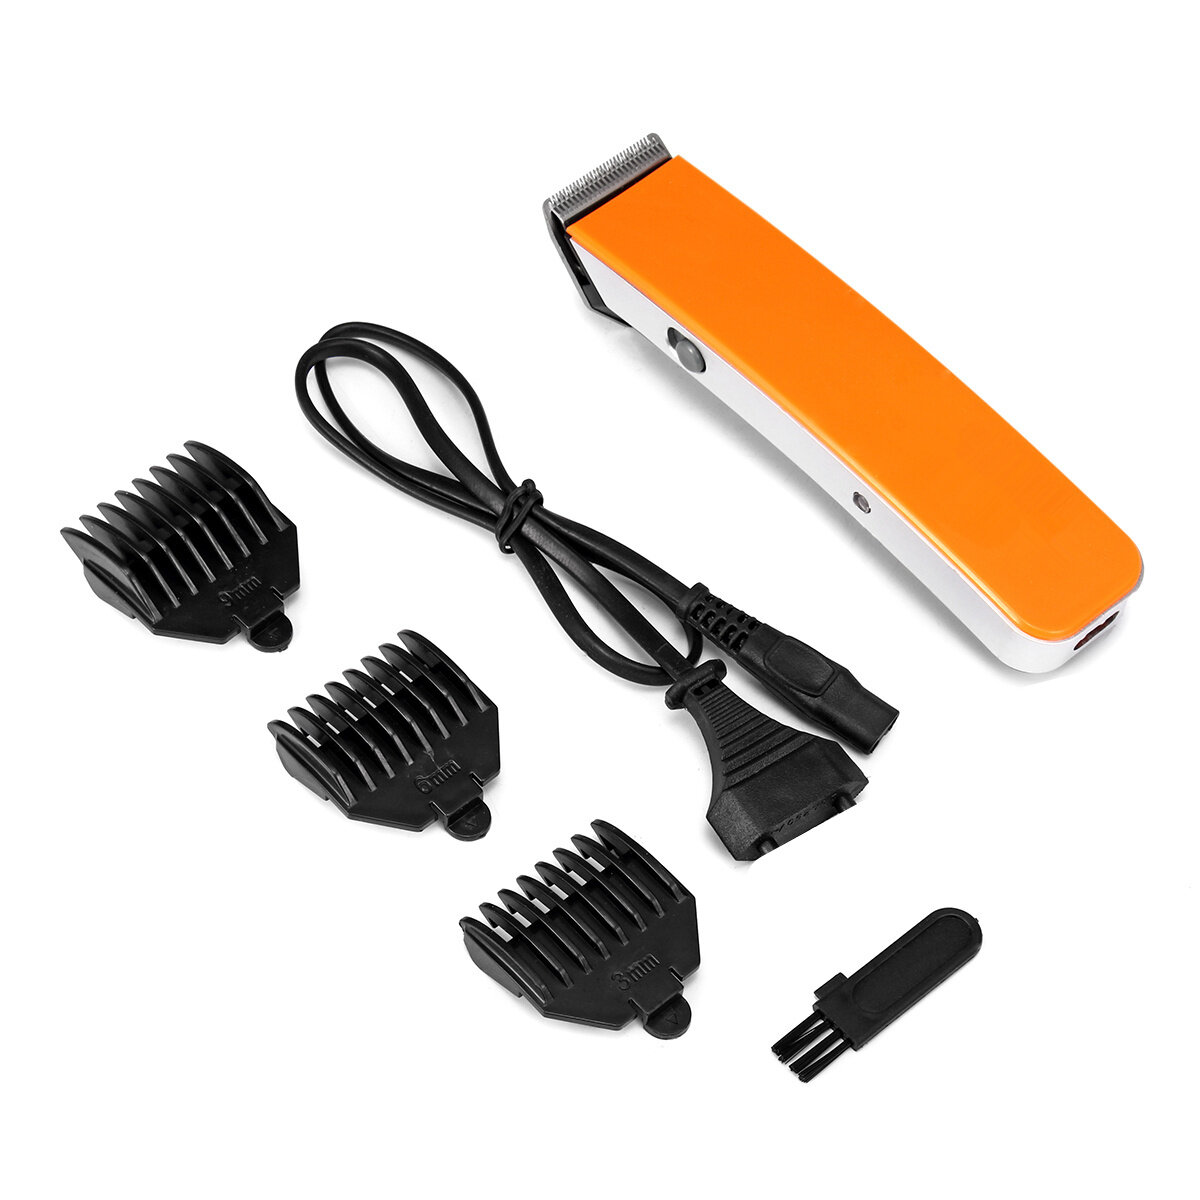 Rechargeable Electric Hair Clipper Cutter Beard Shaver Razor Trimmer Groomer